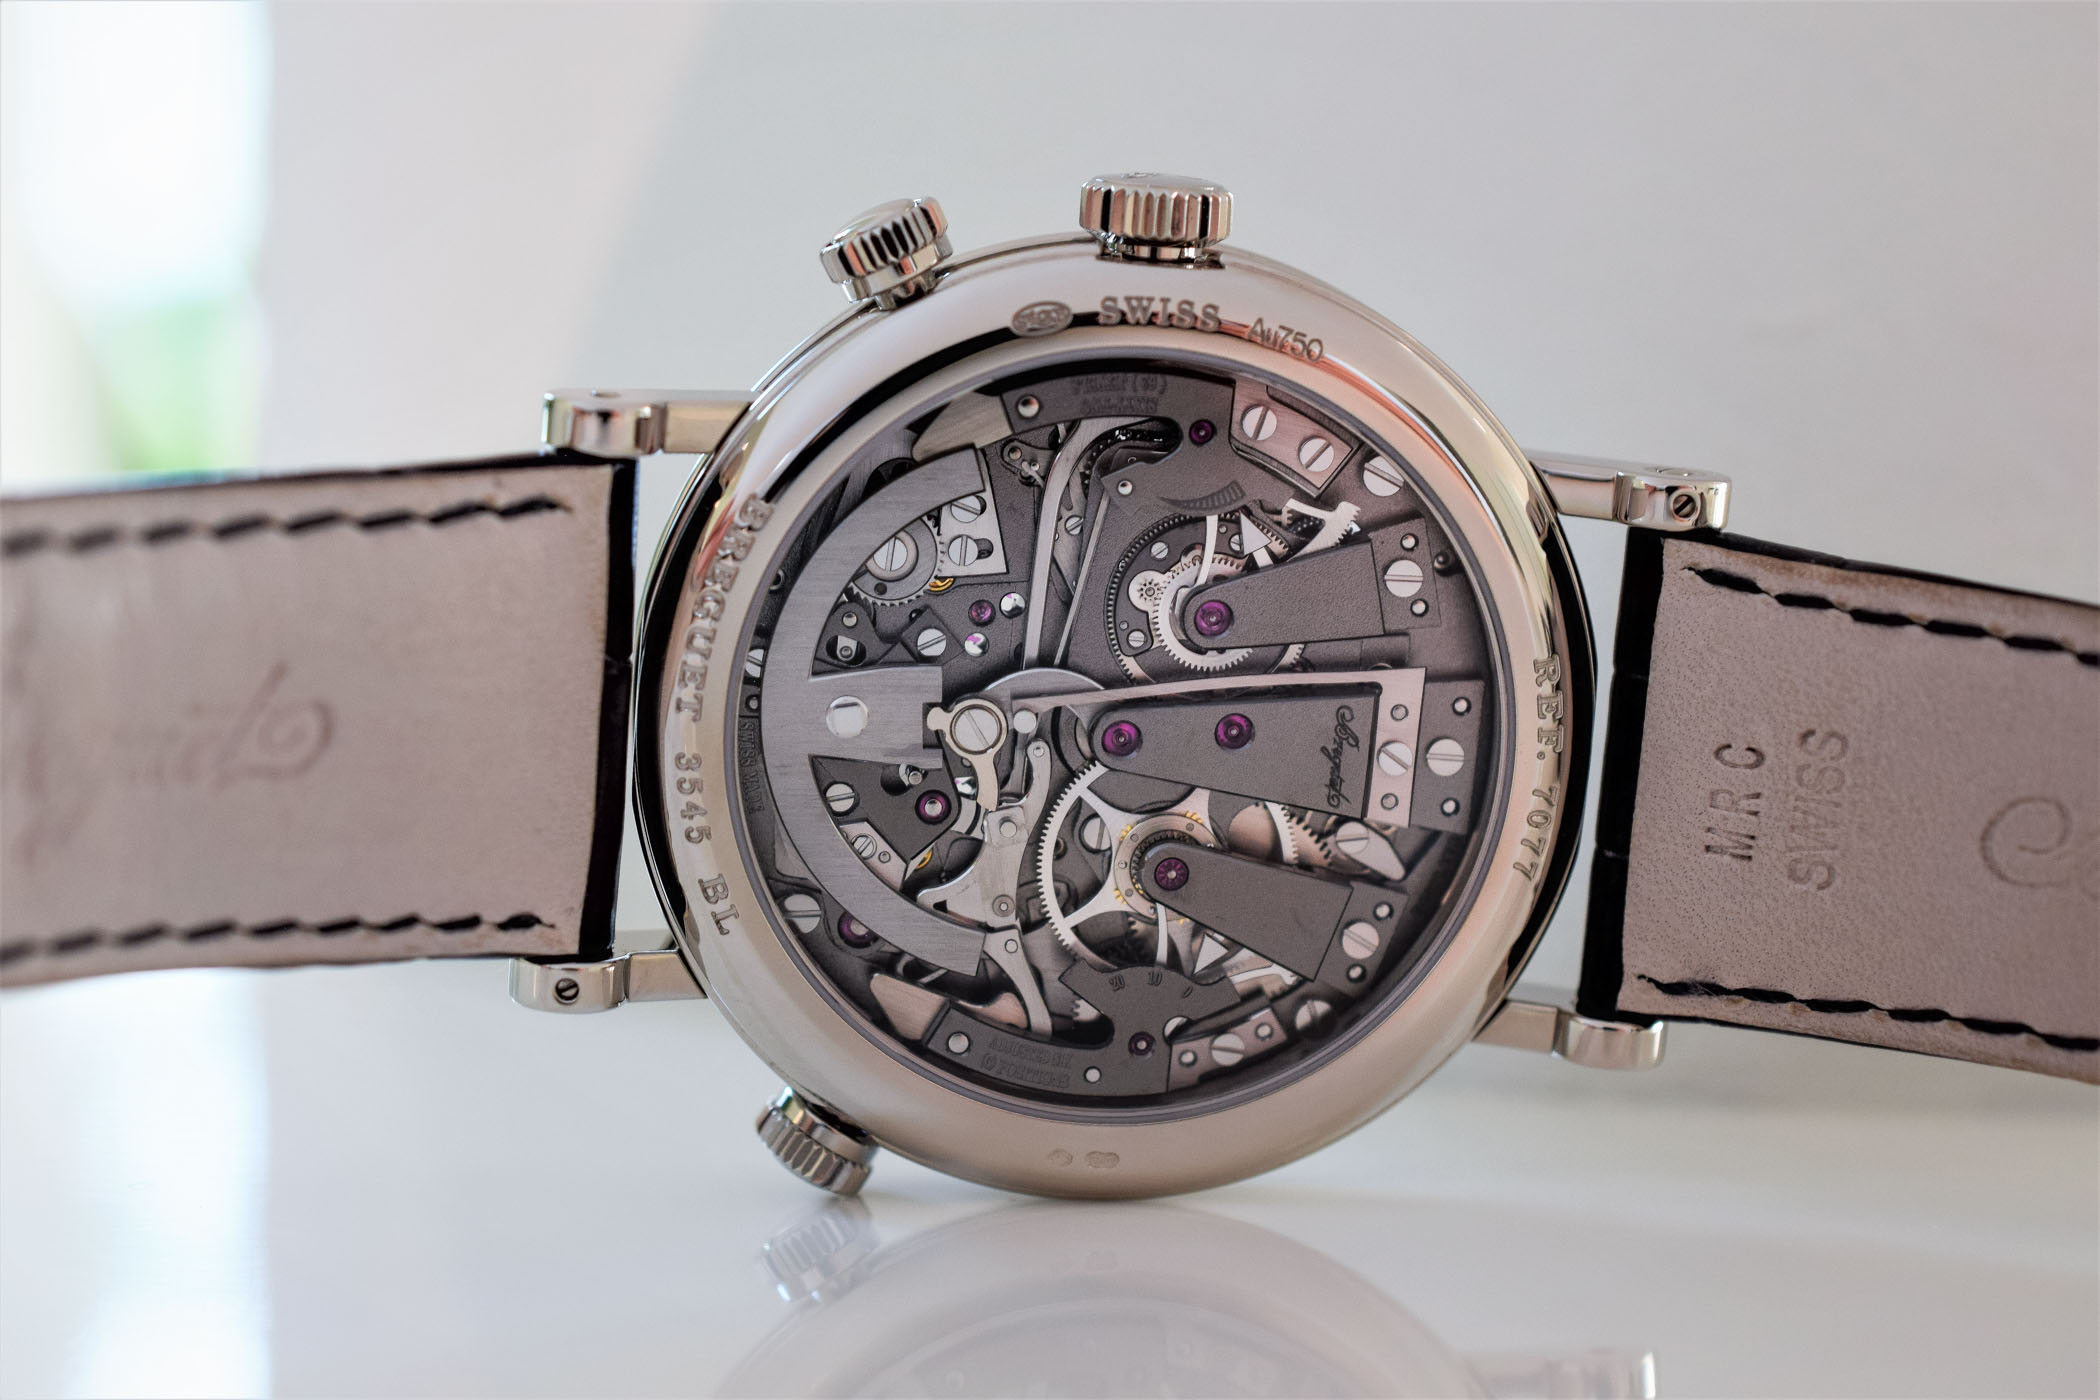 Breguet Tradition Chronograph Independent 7077 - 7